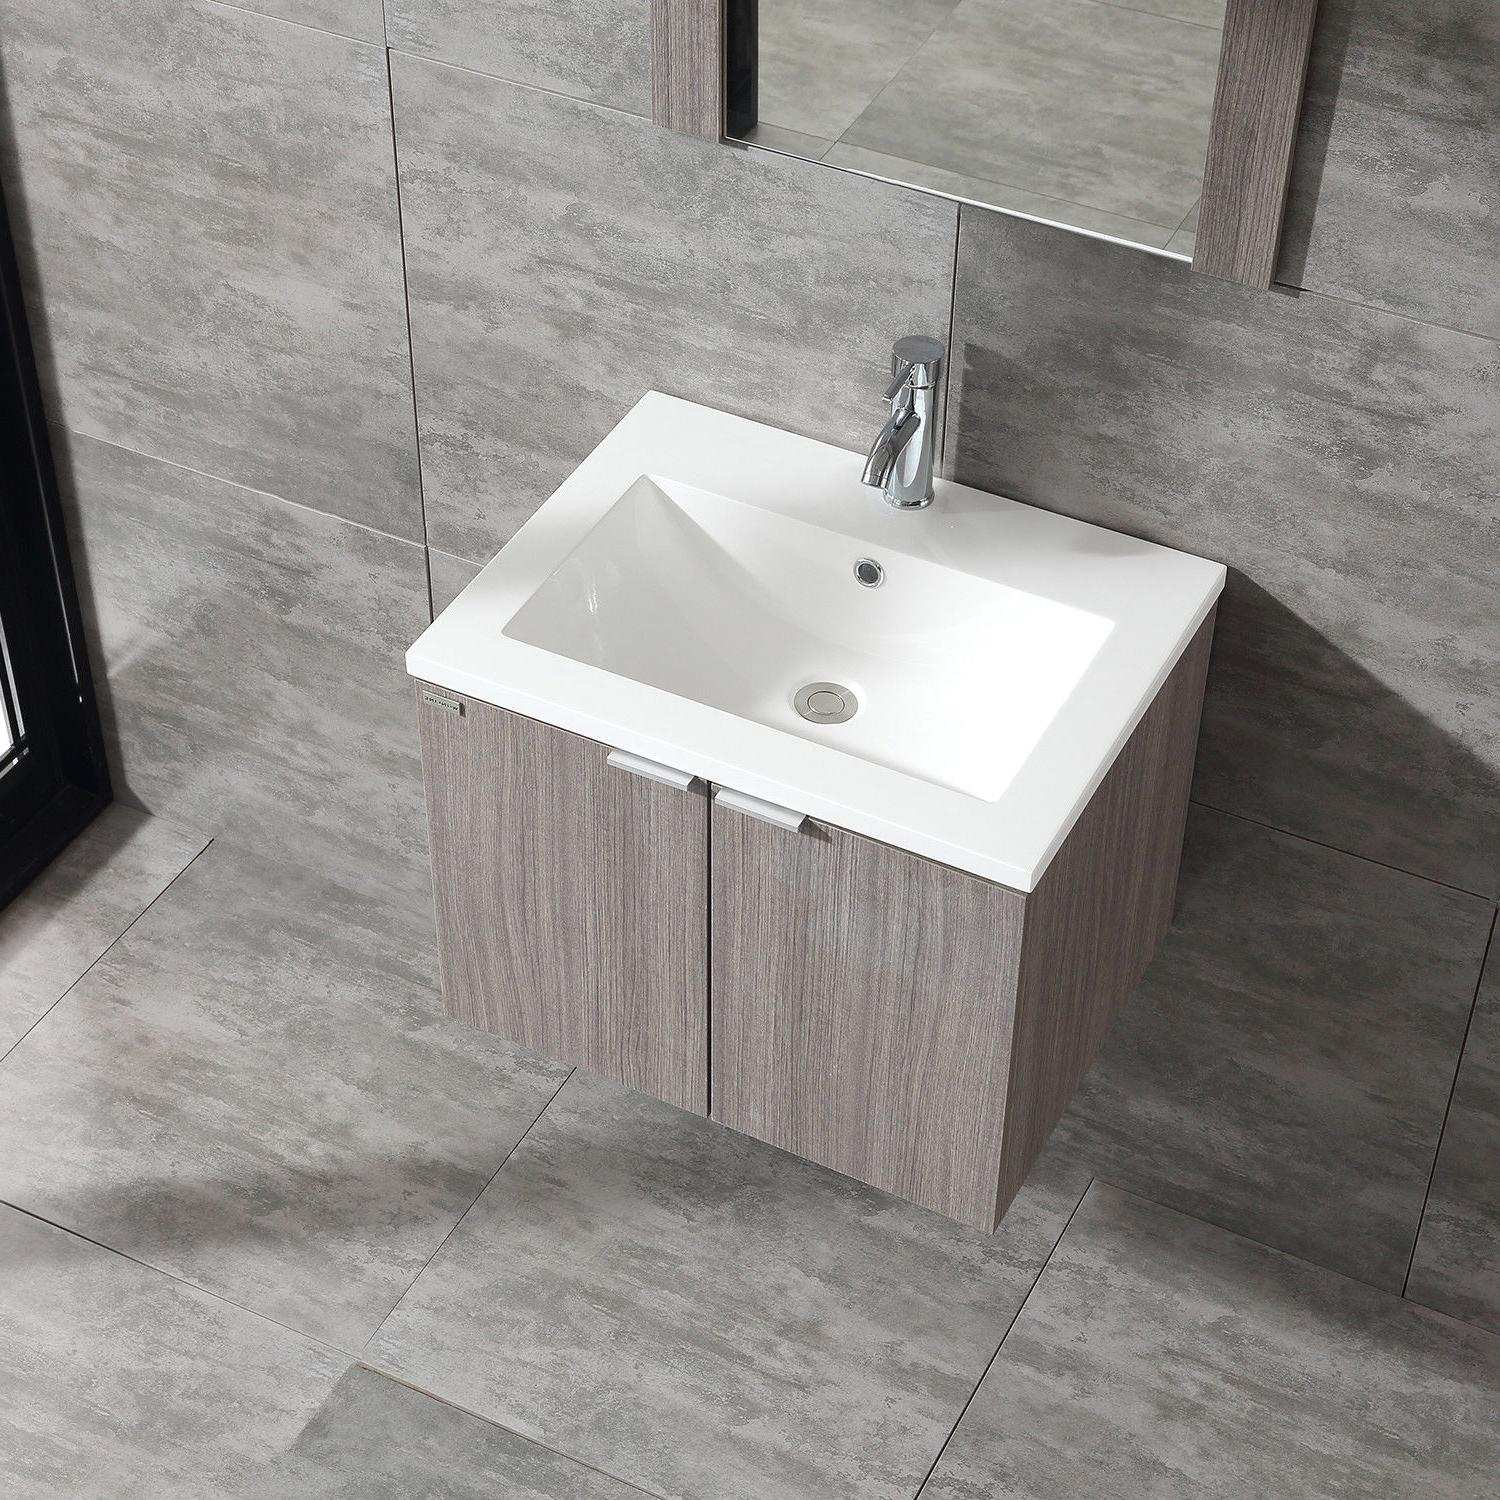 Wood Cabinet Basin Sink Combo